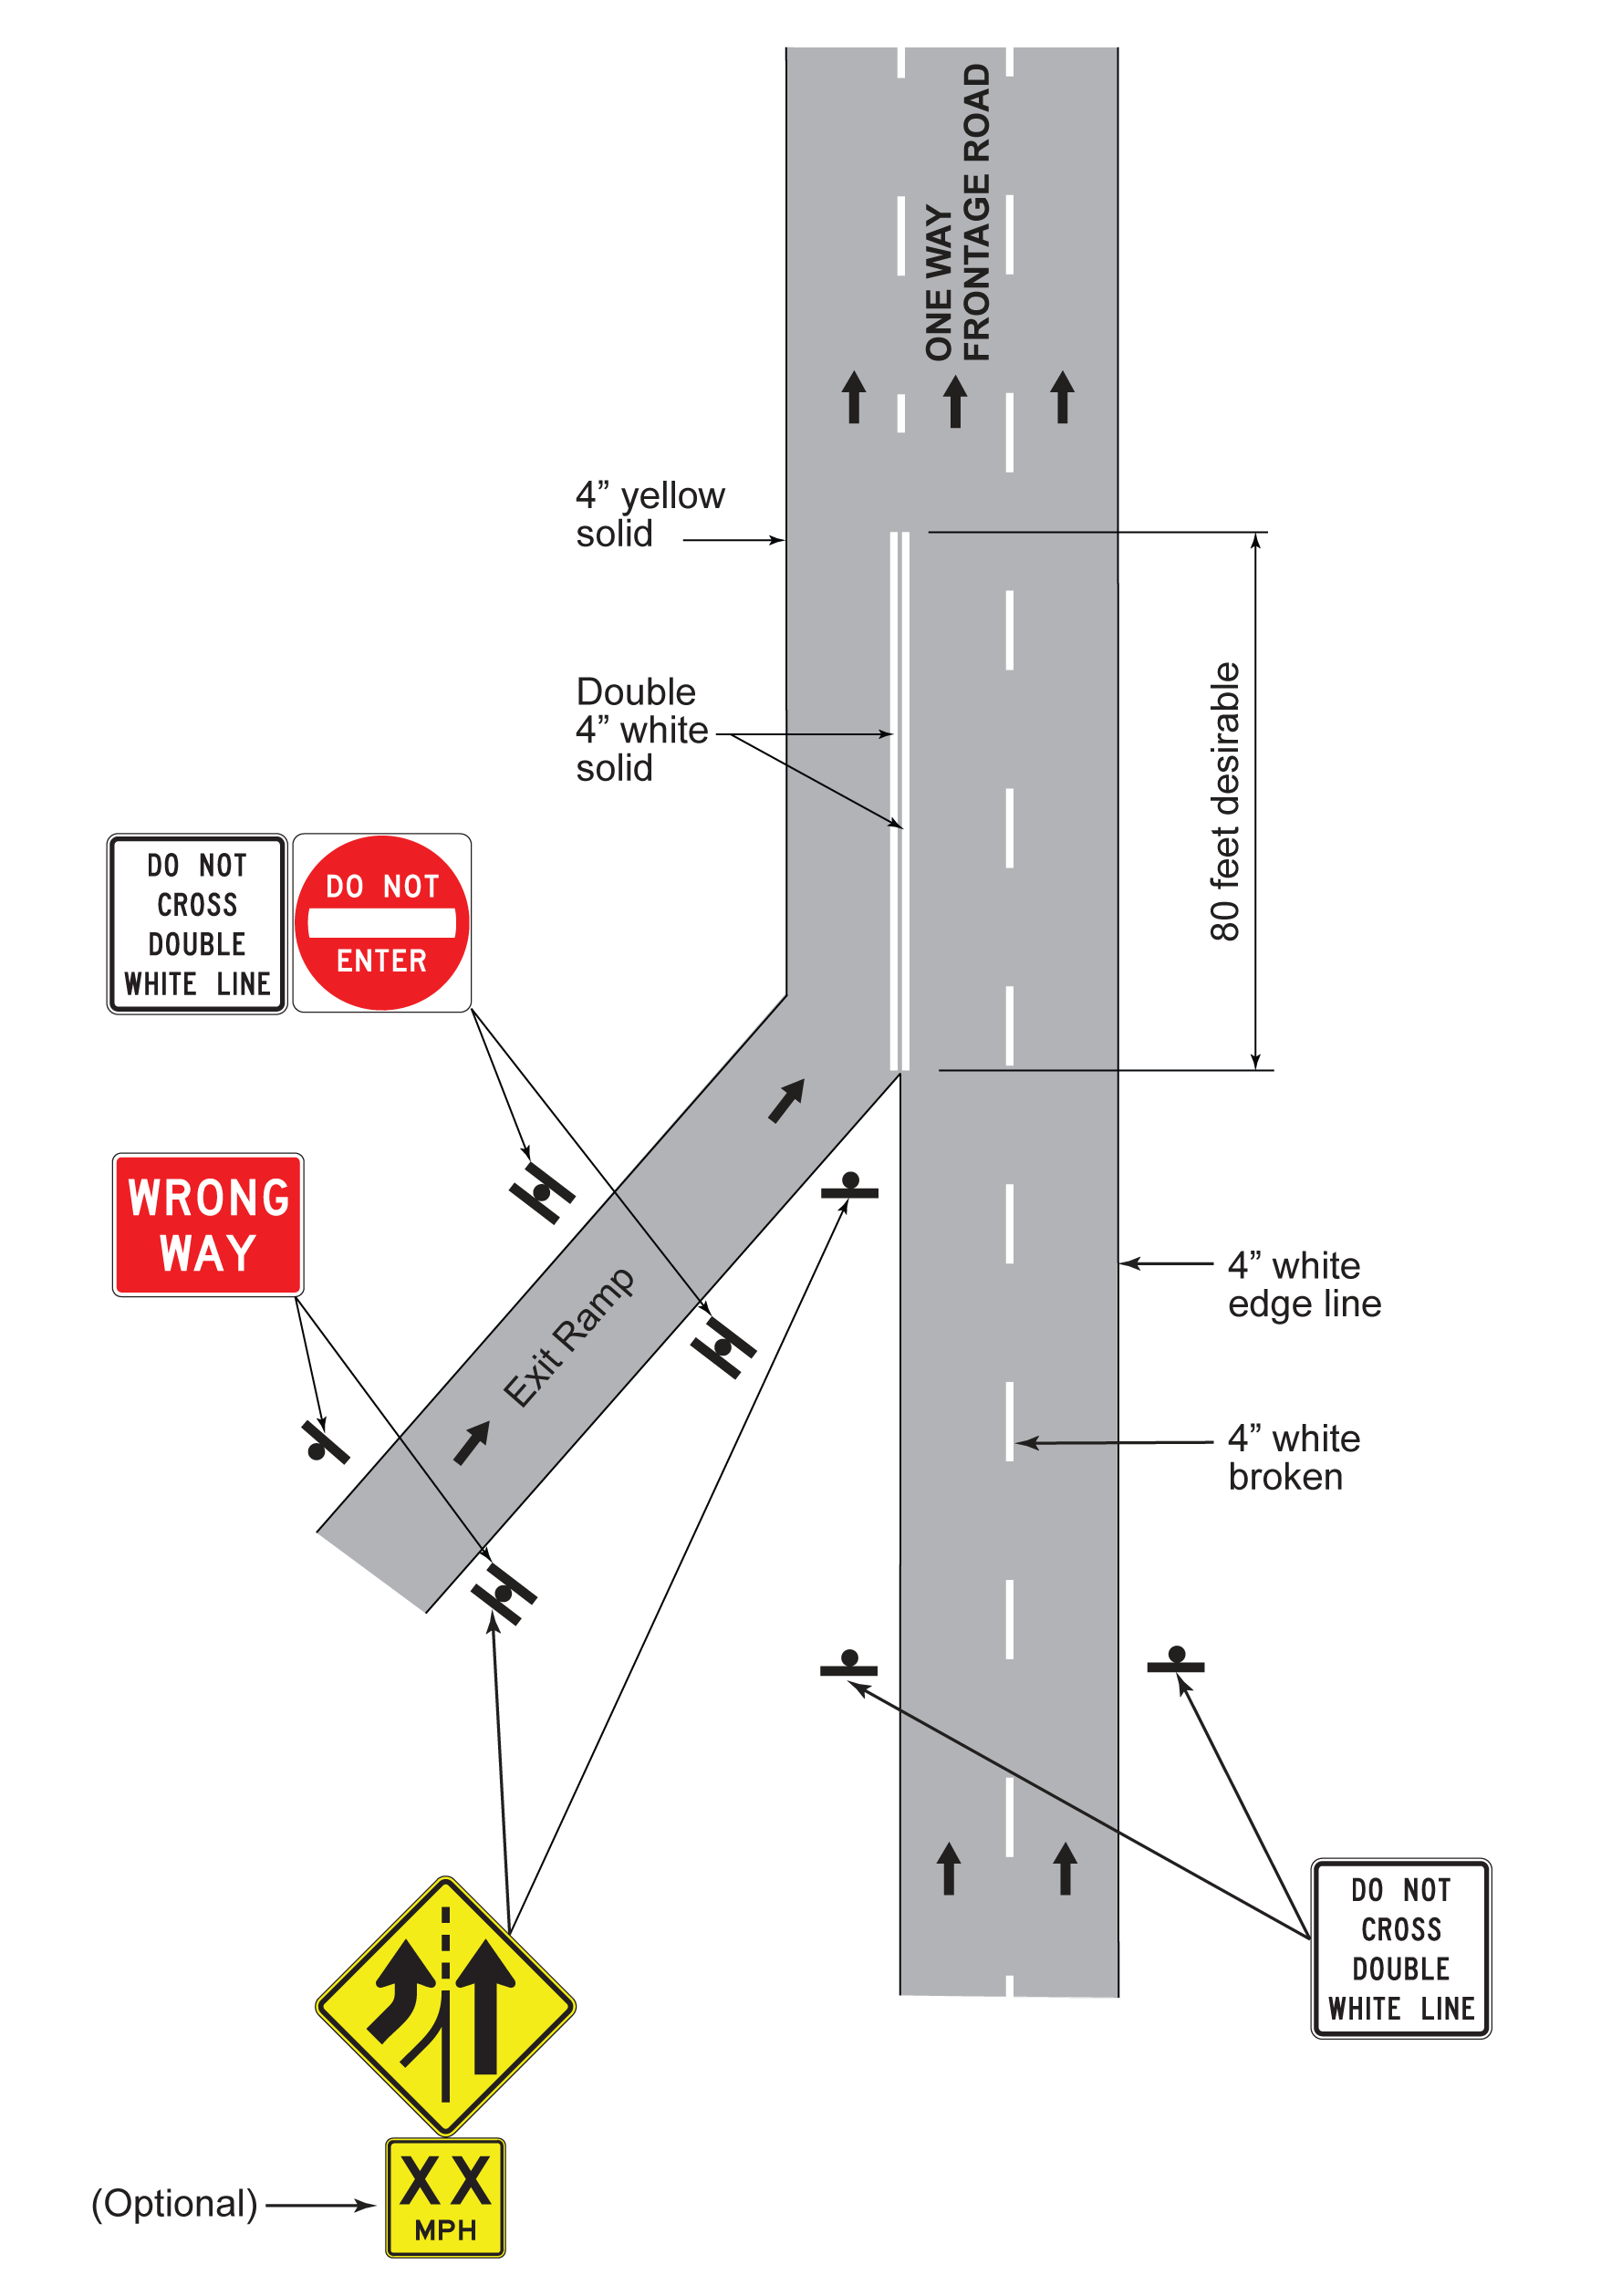 exit ramp traffic diagram sky multiroom wiring of freeway intersection great installation